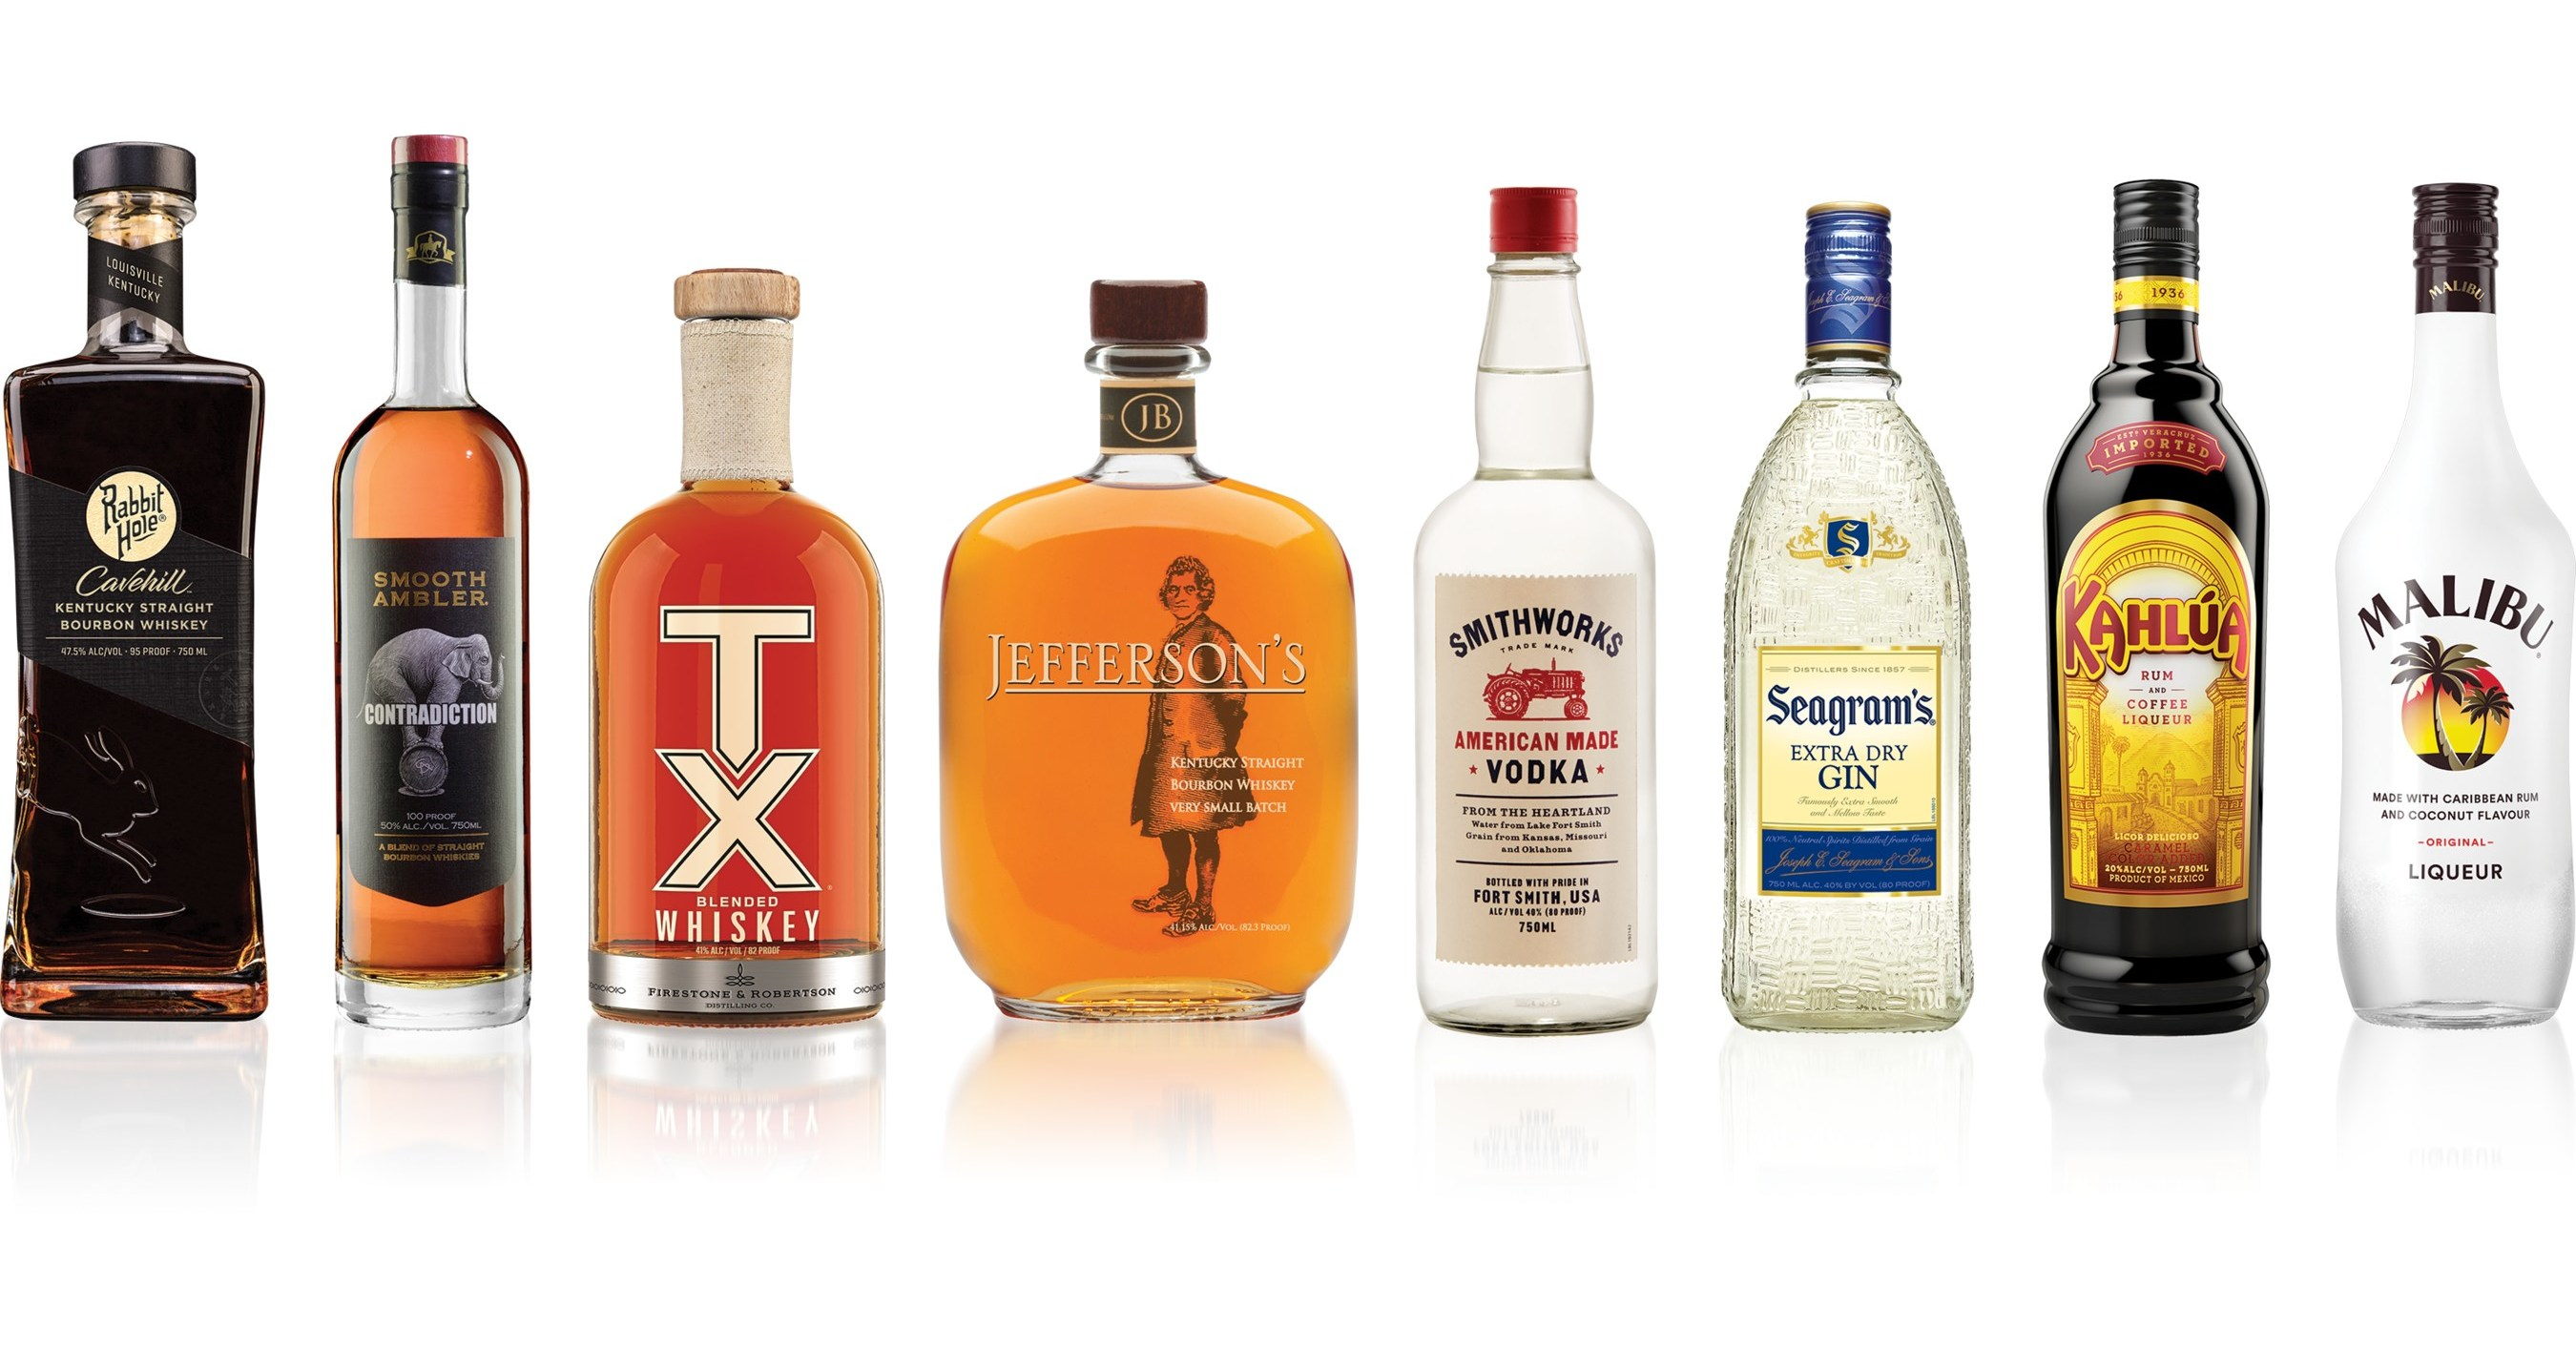 Pernod Ricard Usa Doubles Down On American Wine & Spirits Brands photo